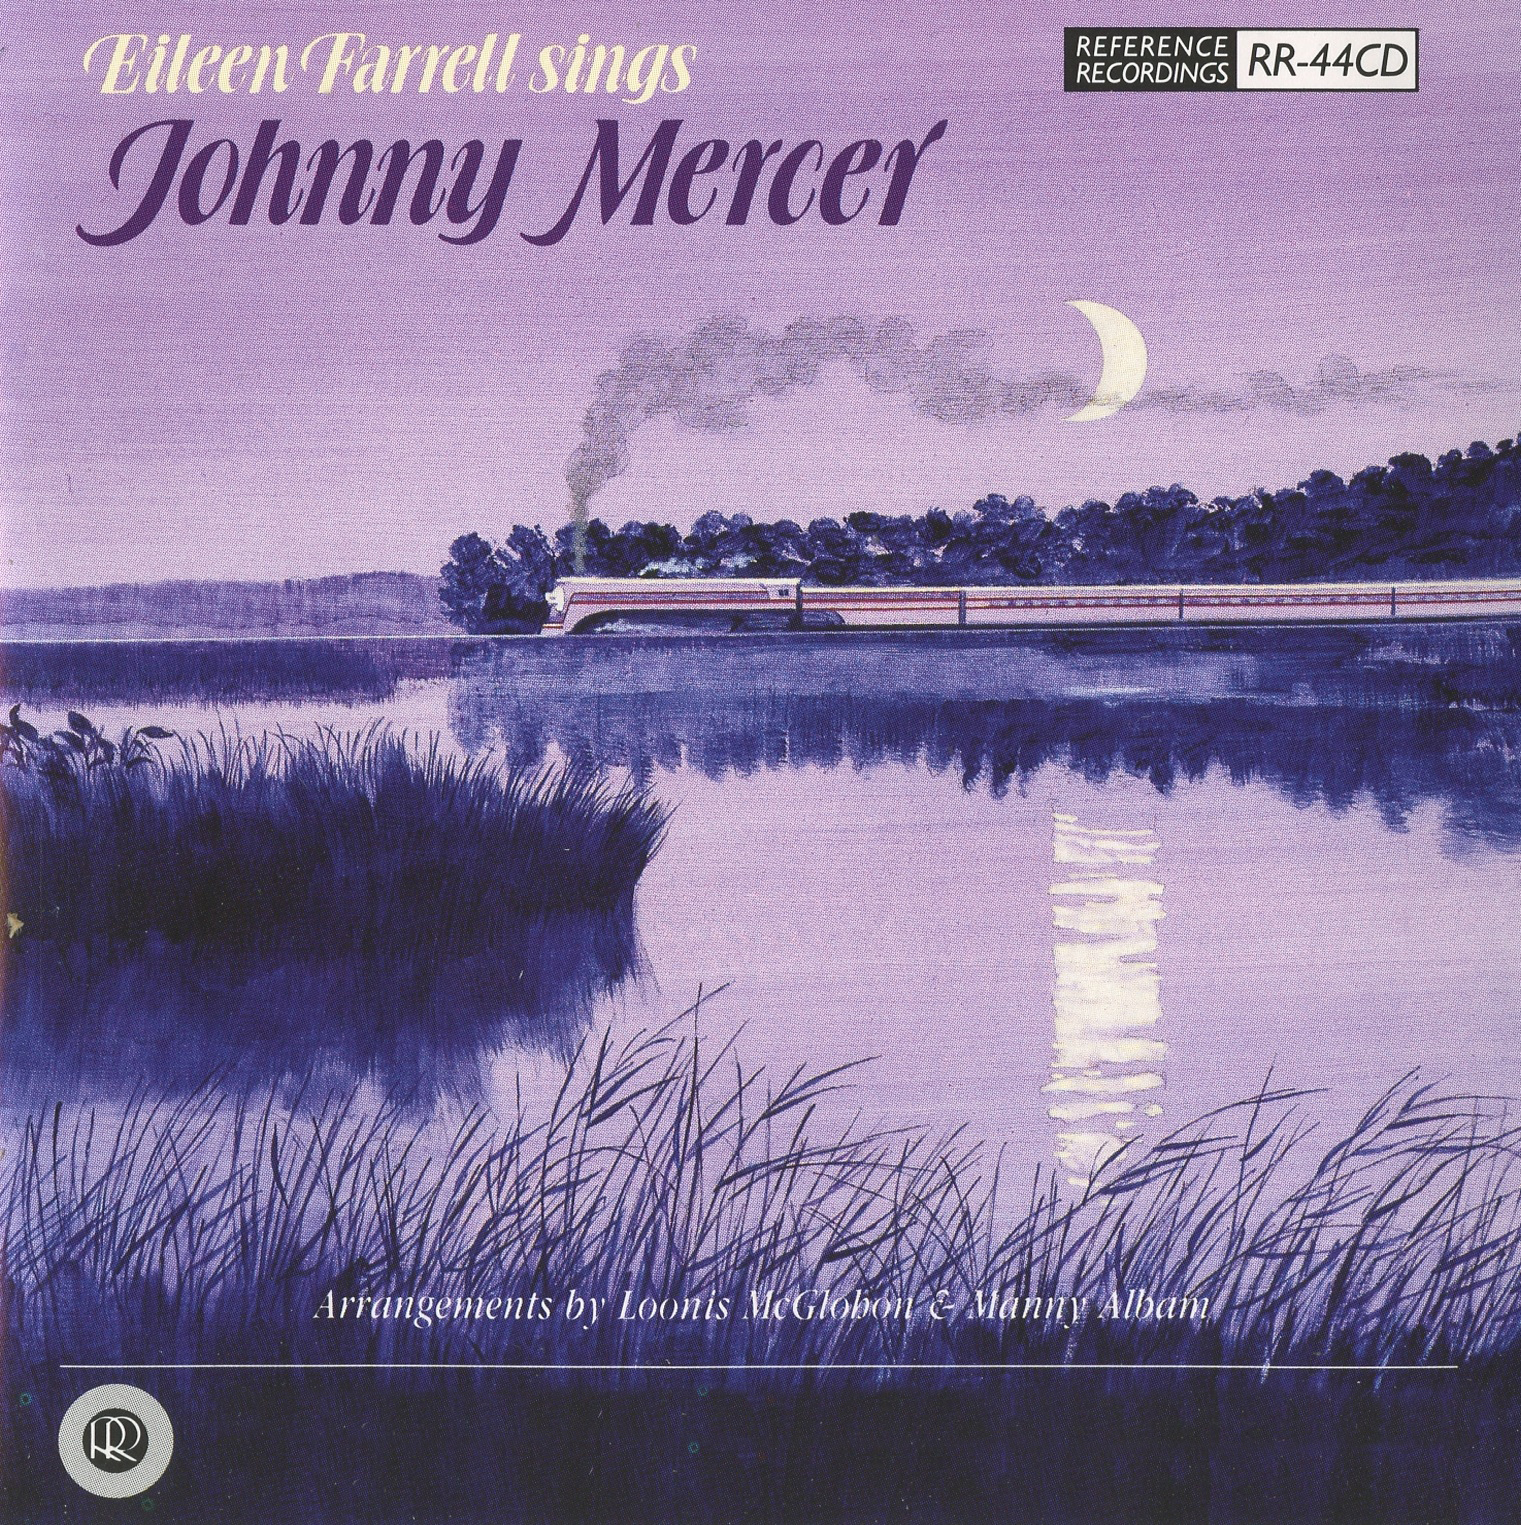 Eileen Farrell Sings Johnny Mercer